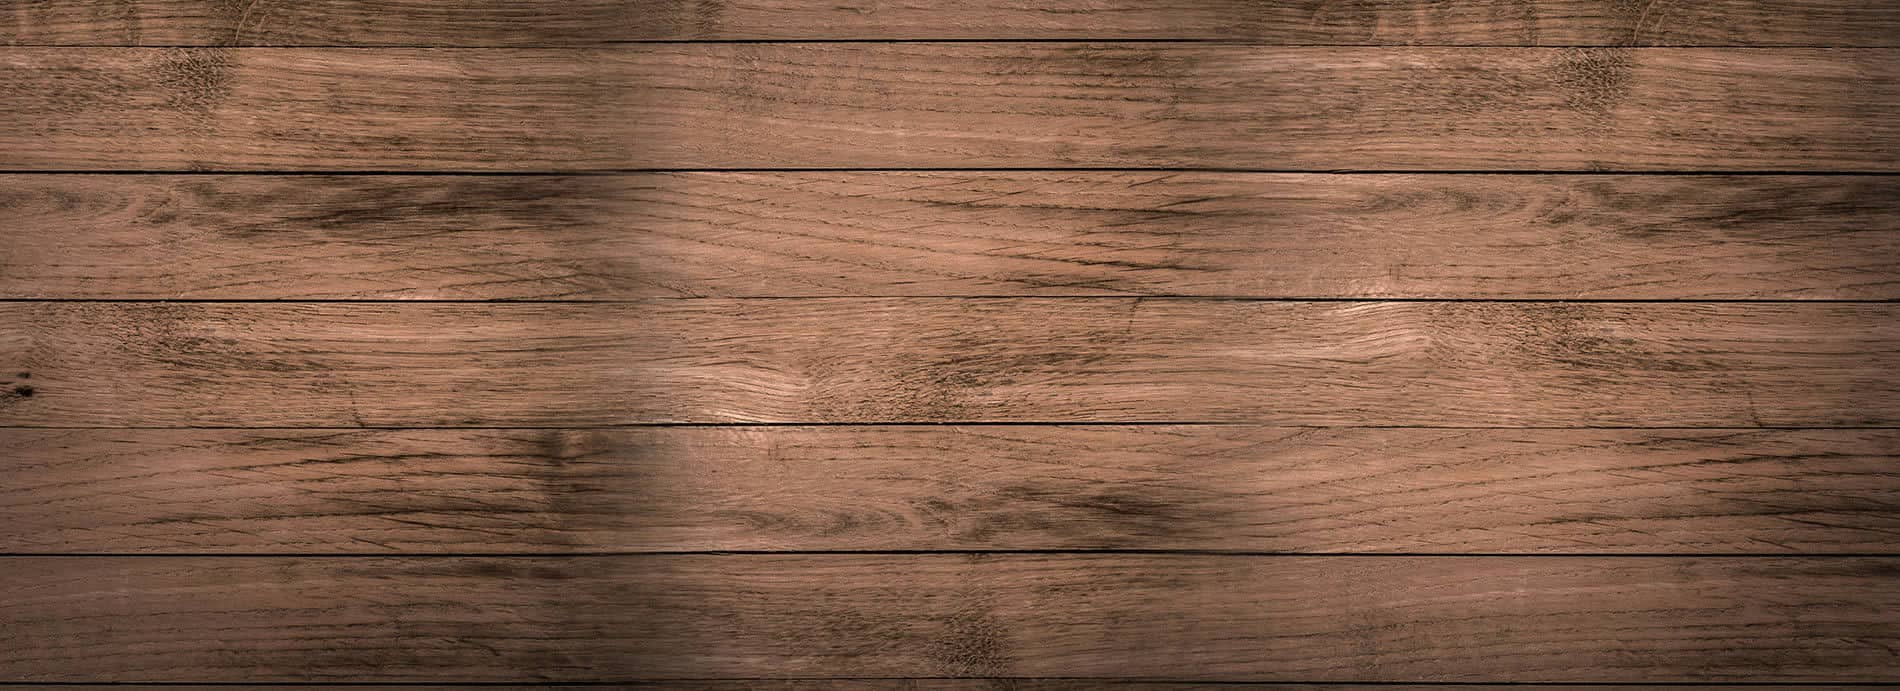 rustic-wood-background-optimized